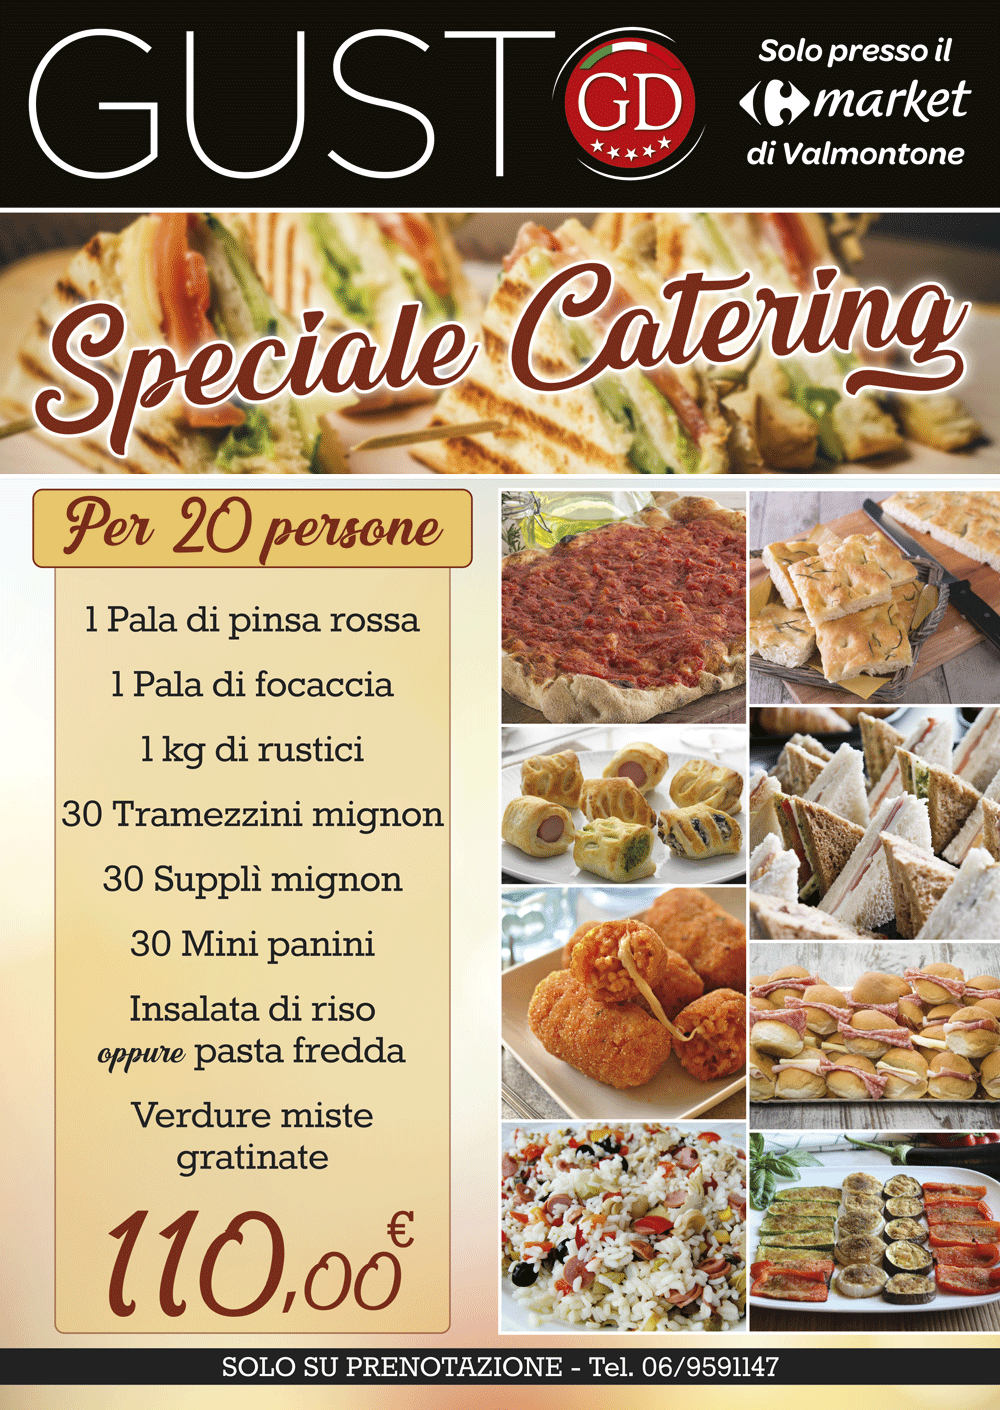 gusto-gd_offerte-valmontone-speciale-catering